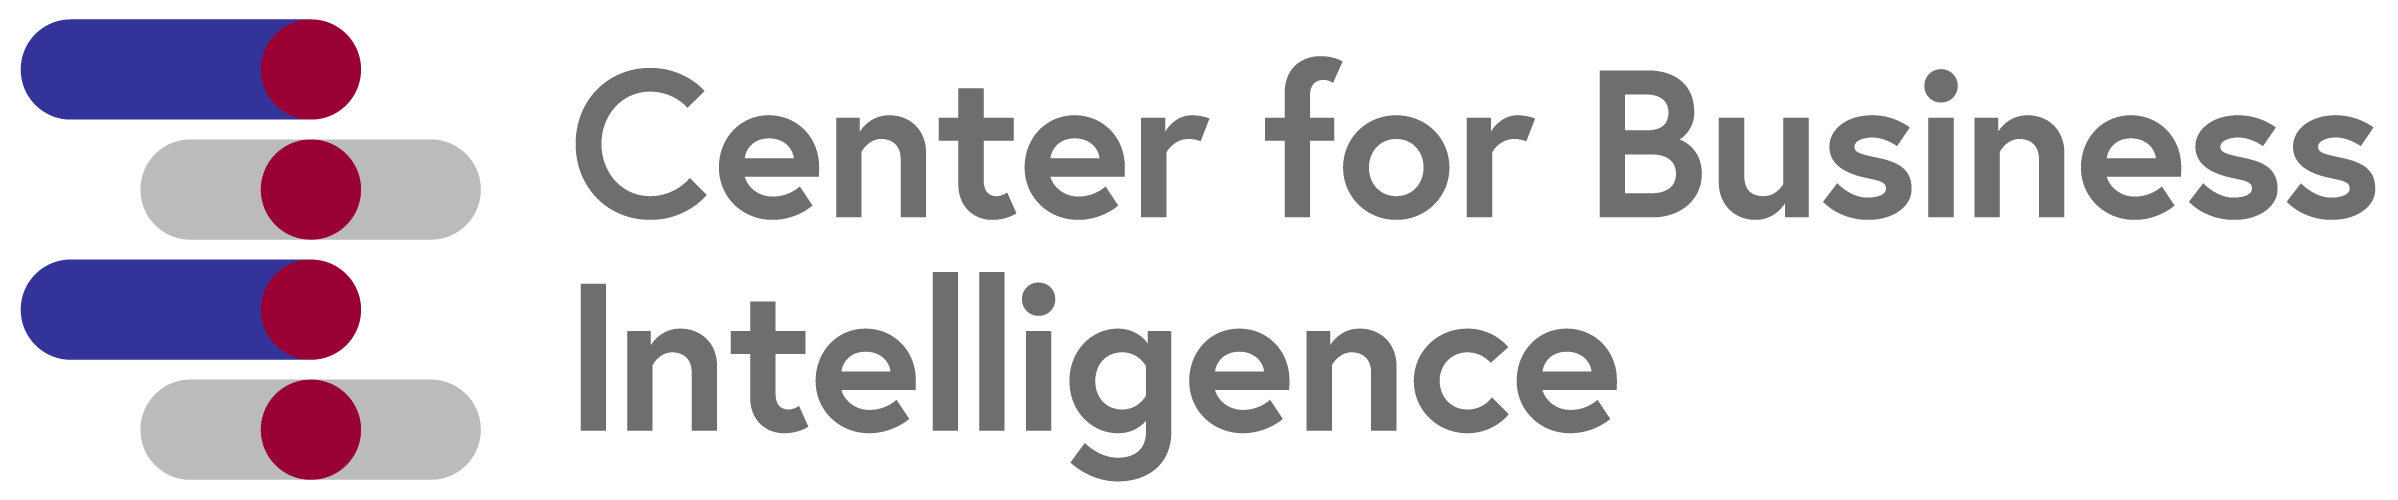 Center for Business Intelligence